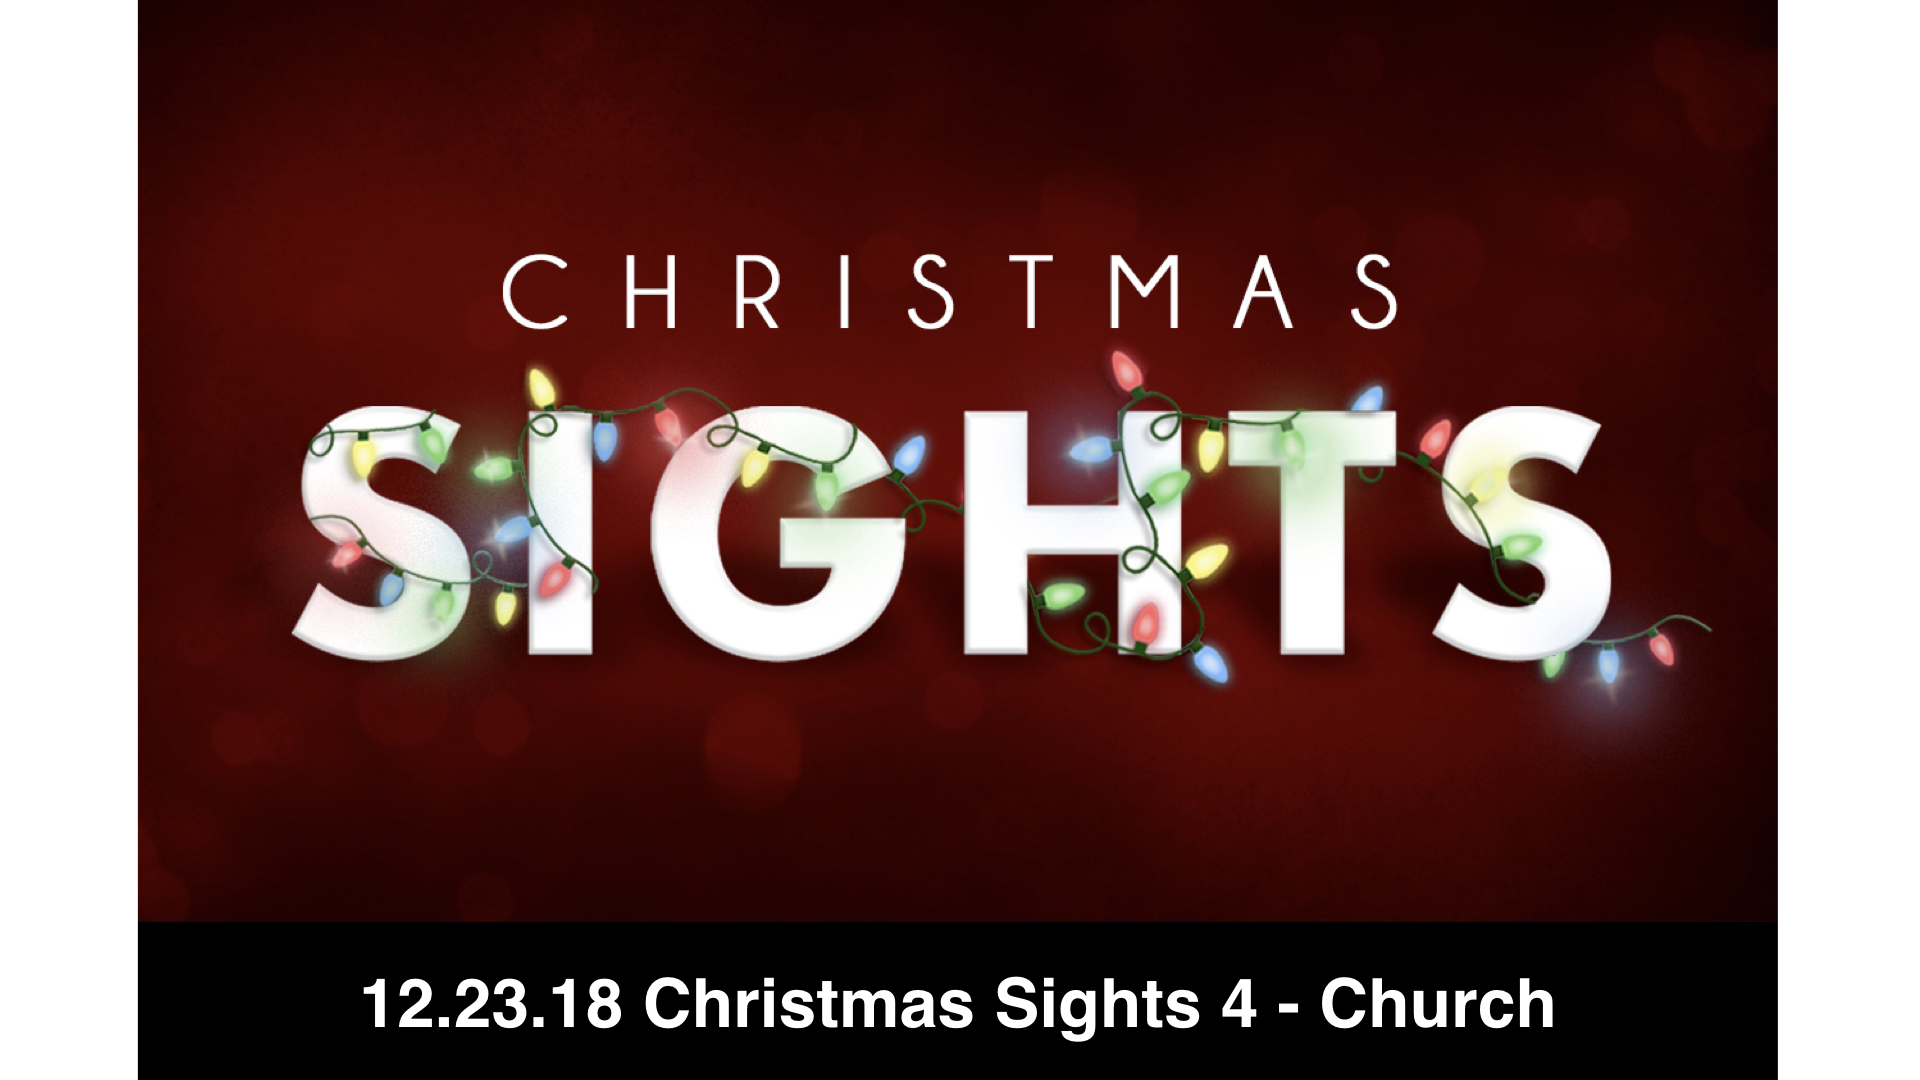 12-23-18 Christmas Sights 4 - Church